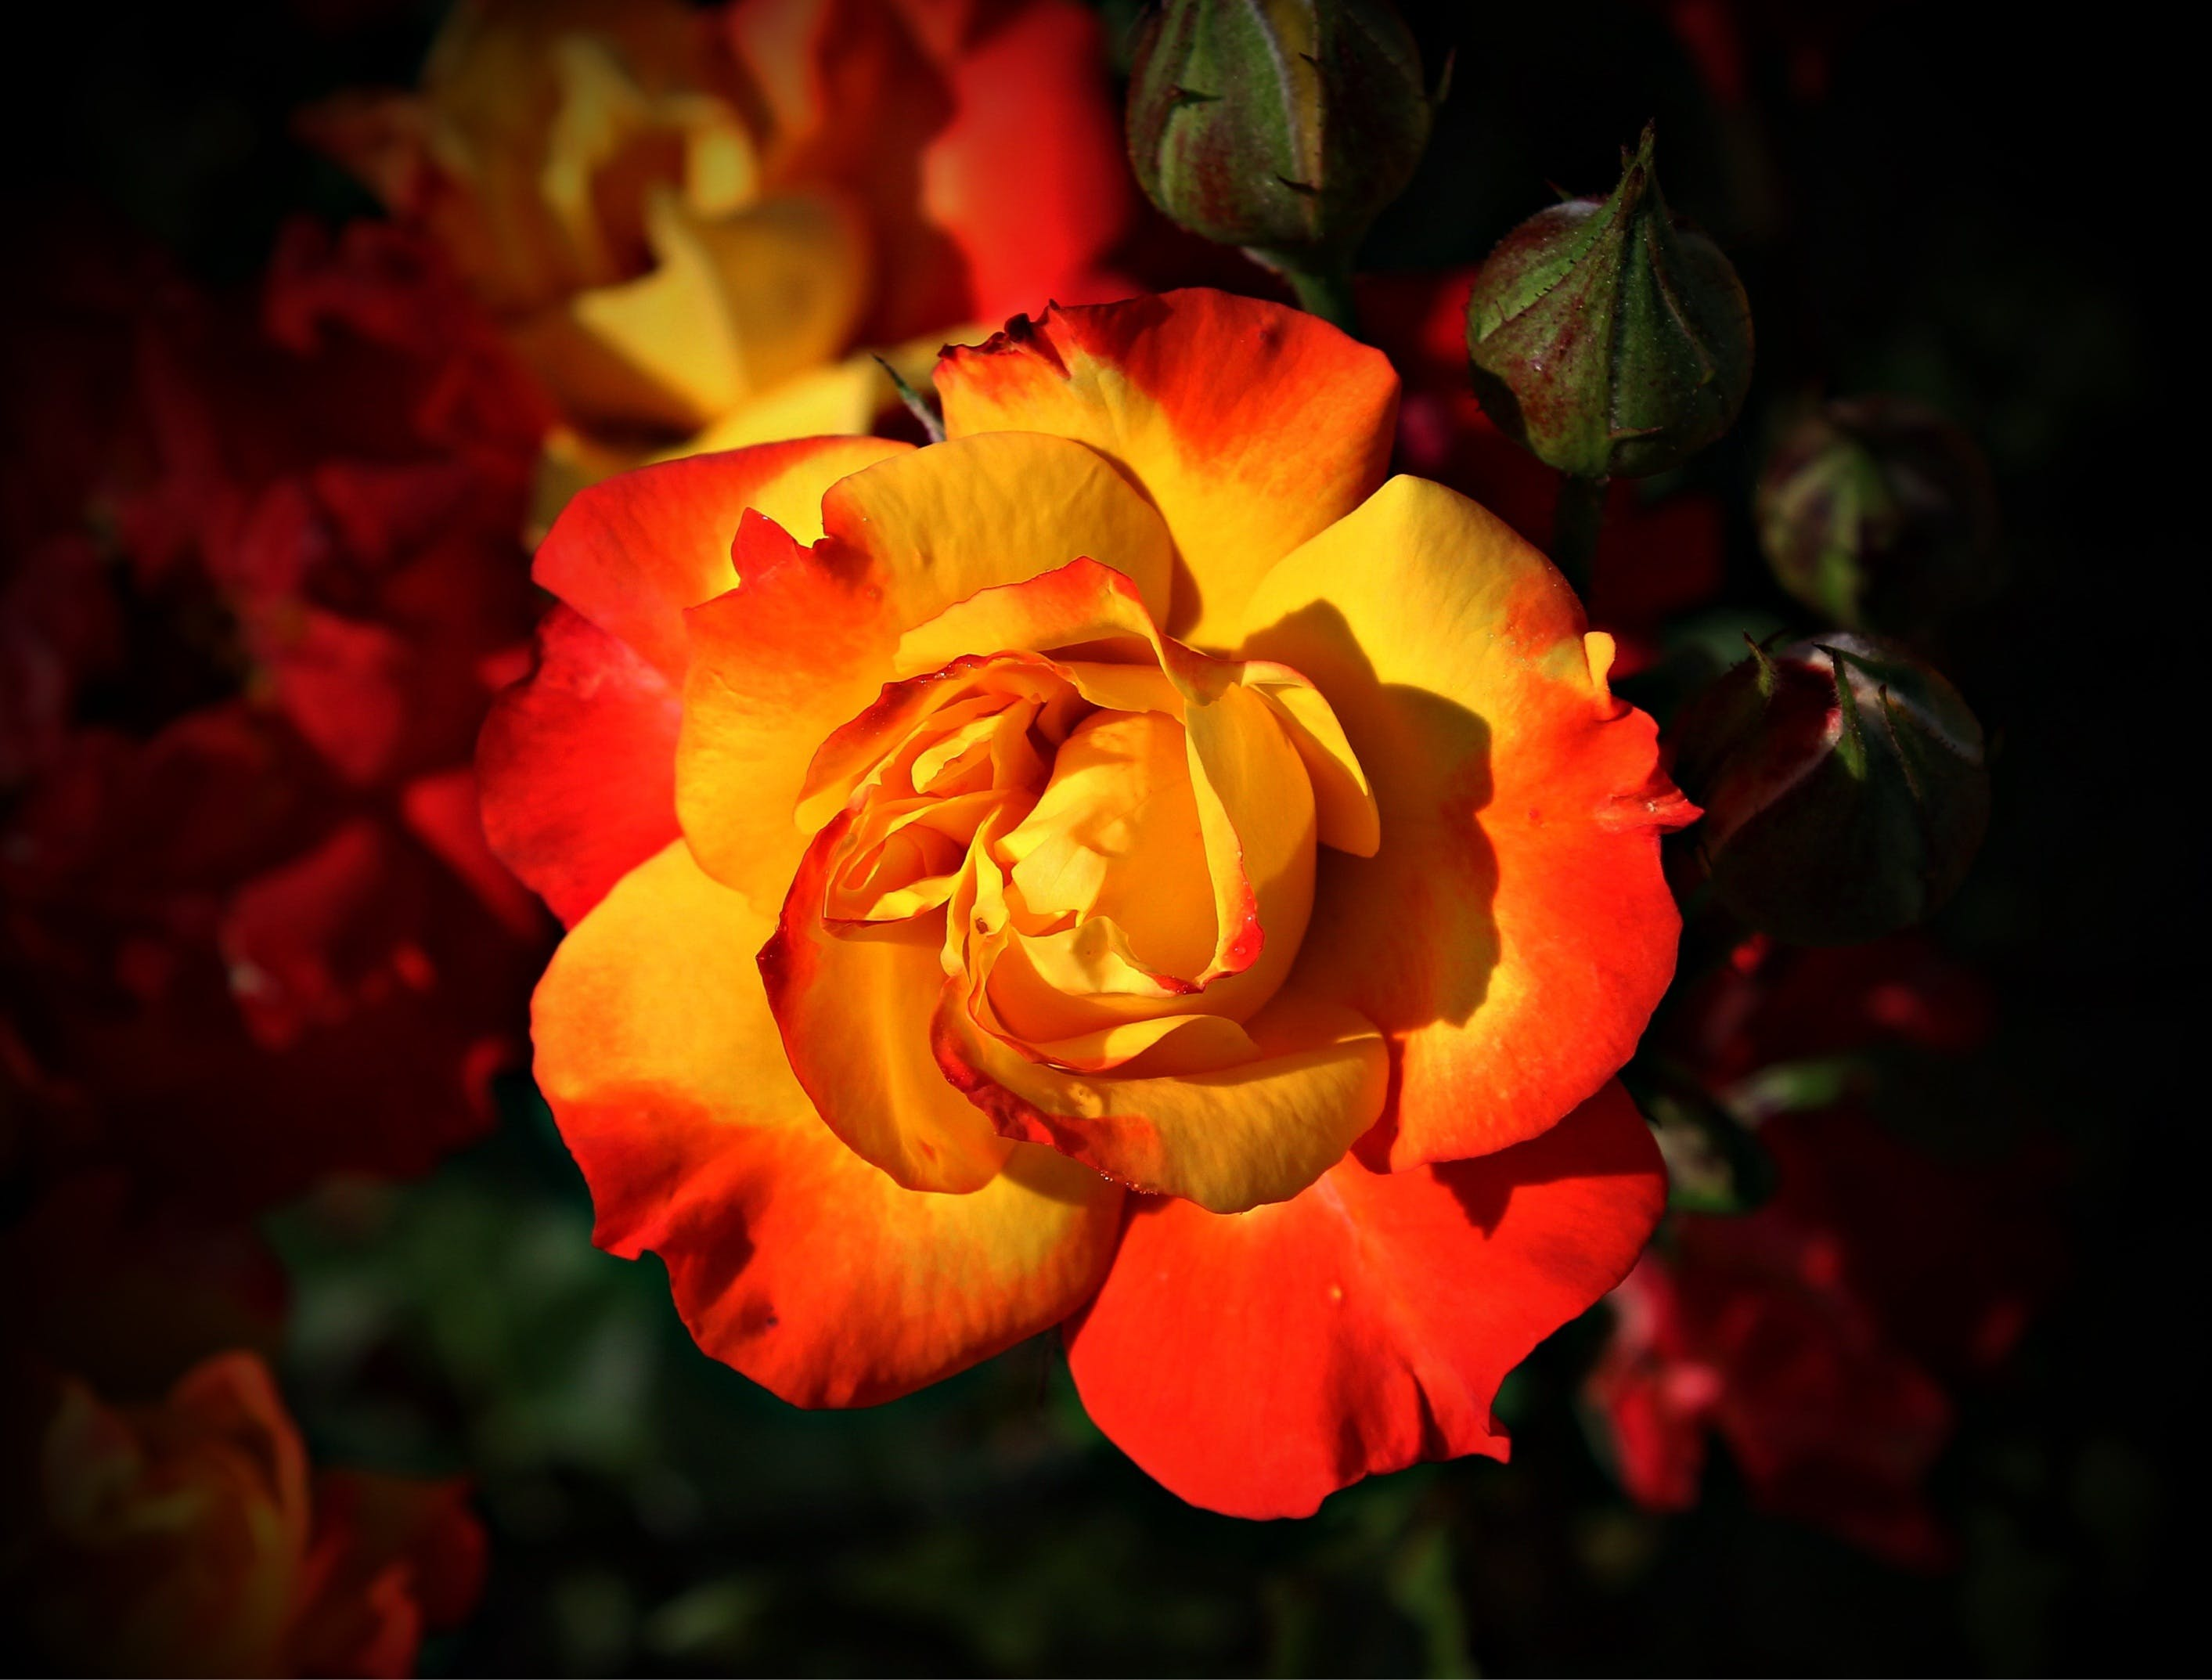 Focus Photography of Yellow and Orange Petaled Flower